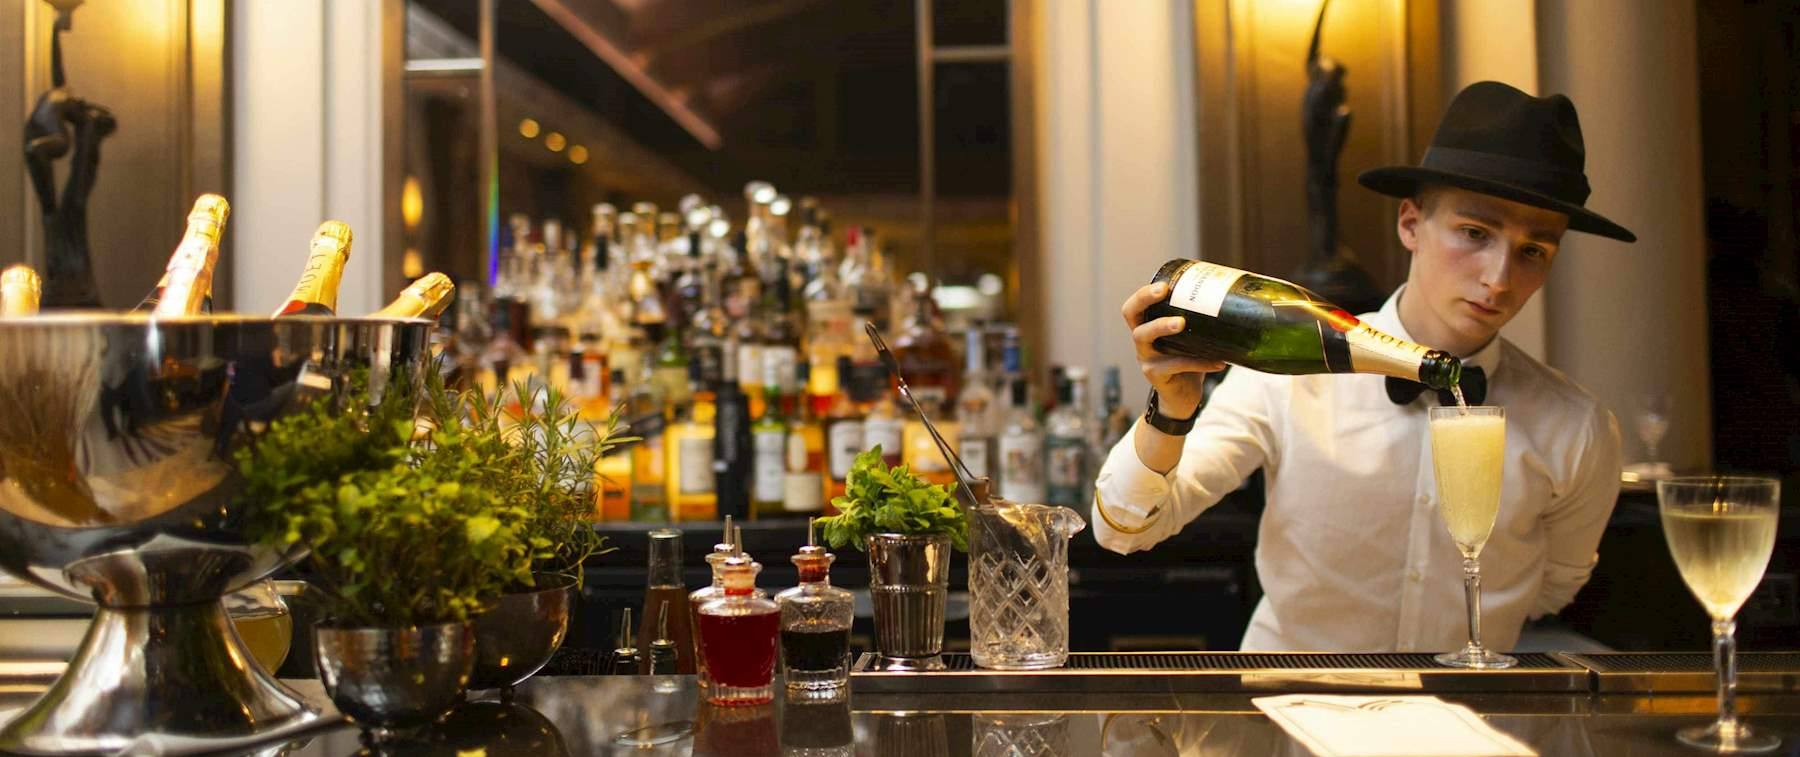 The Palm Court Drinks